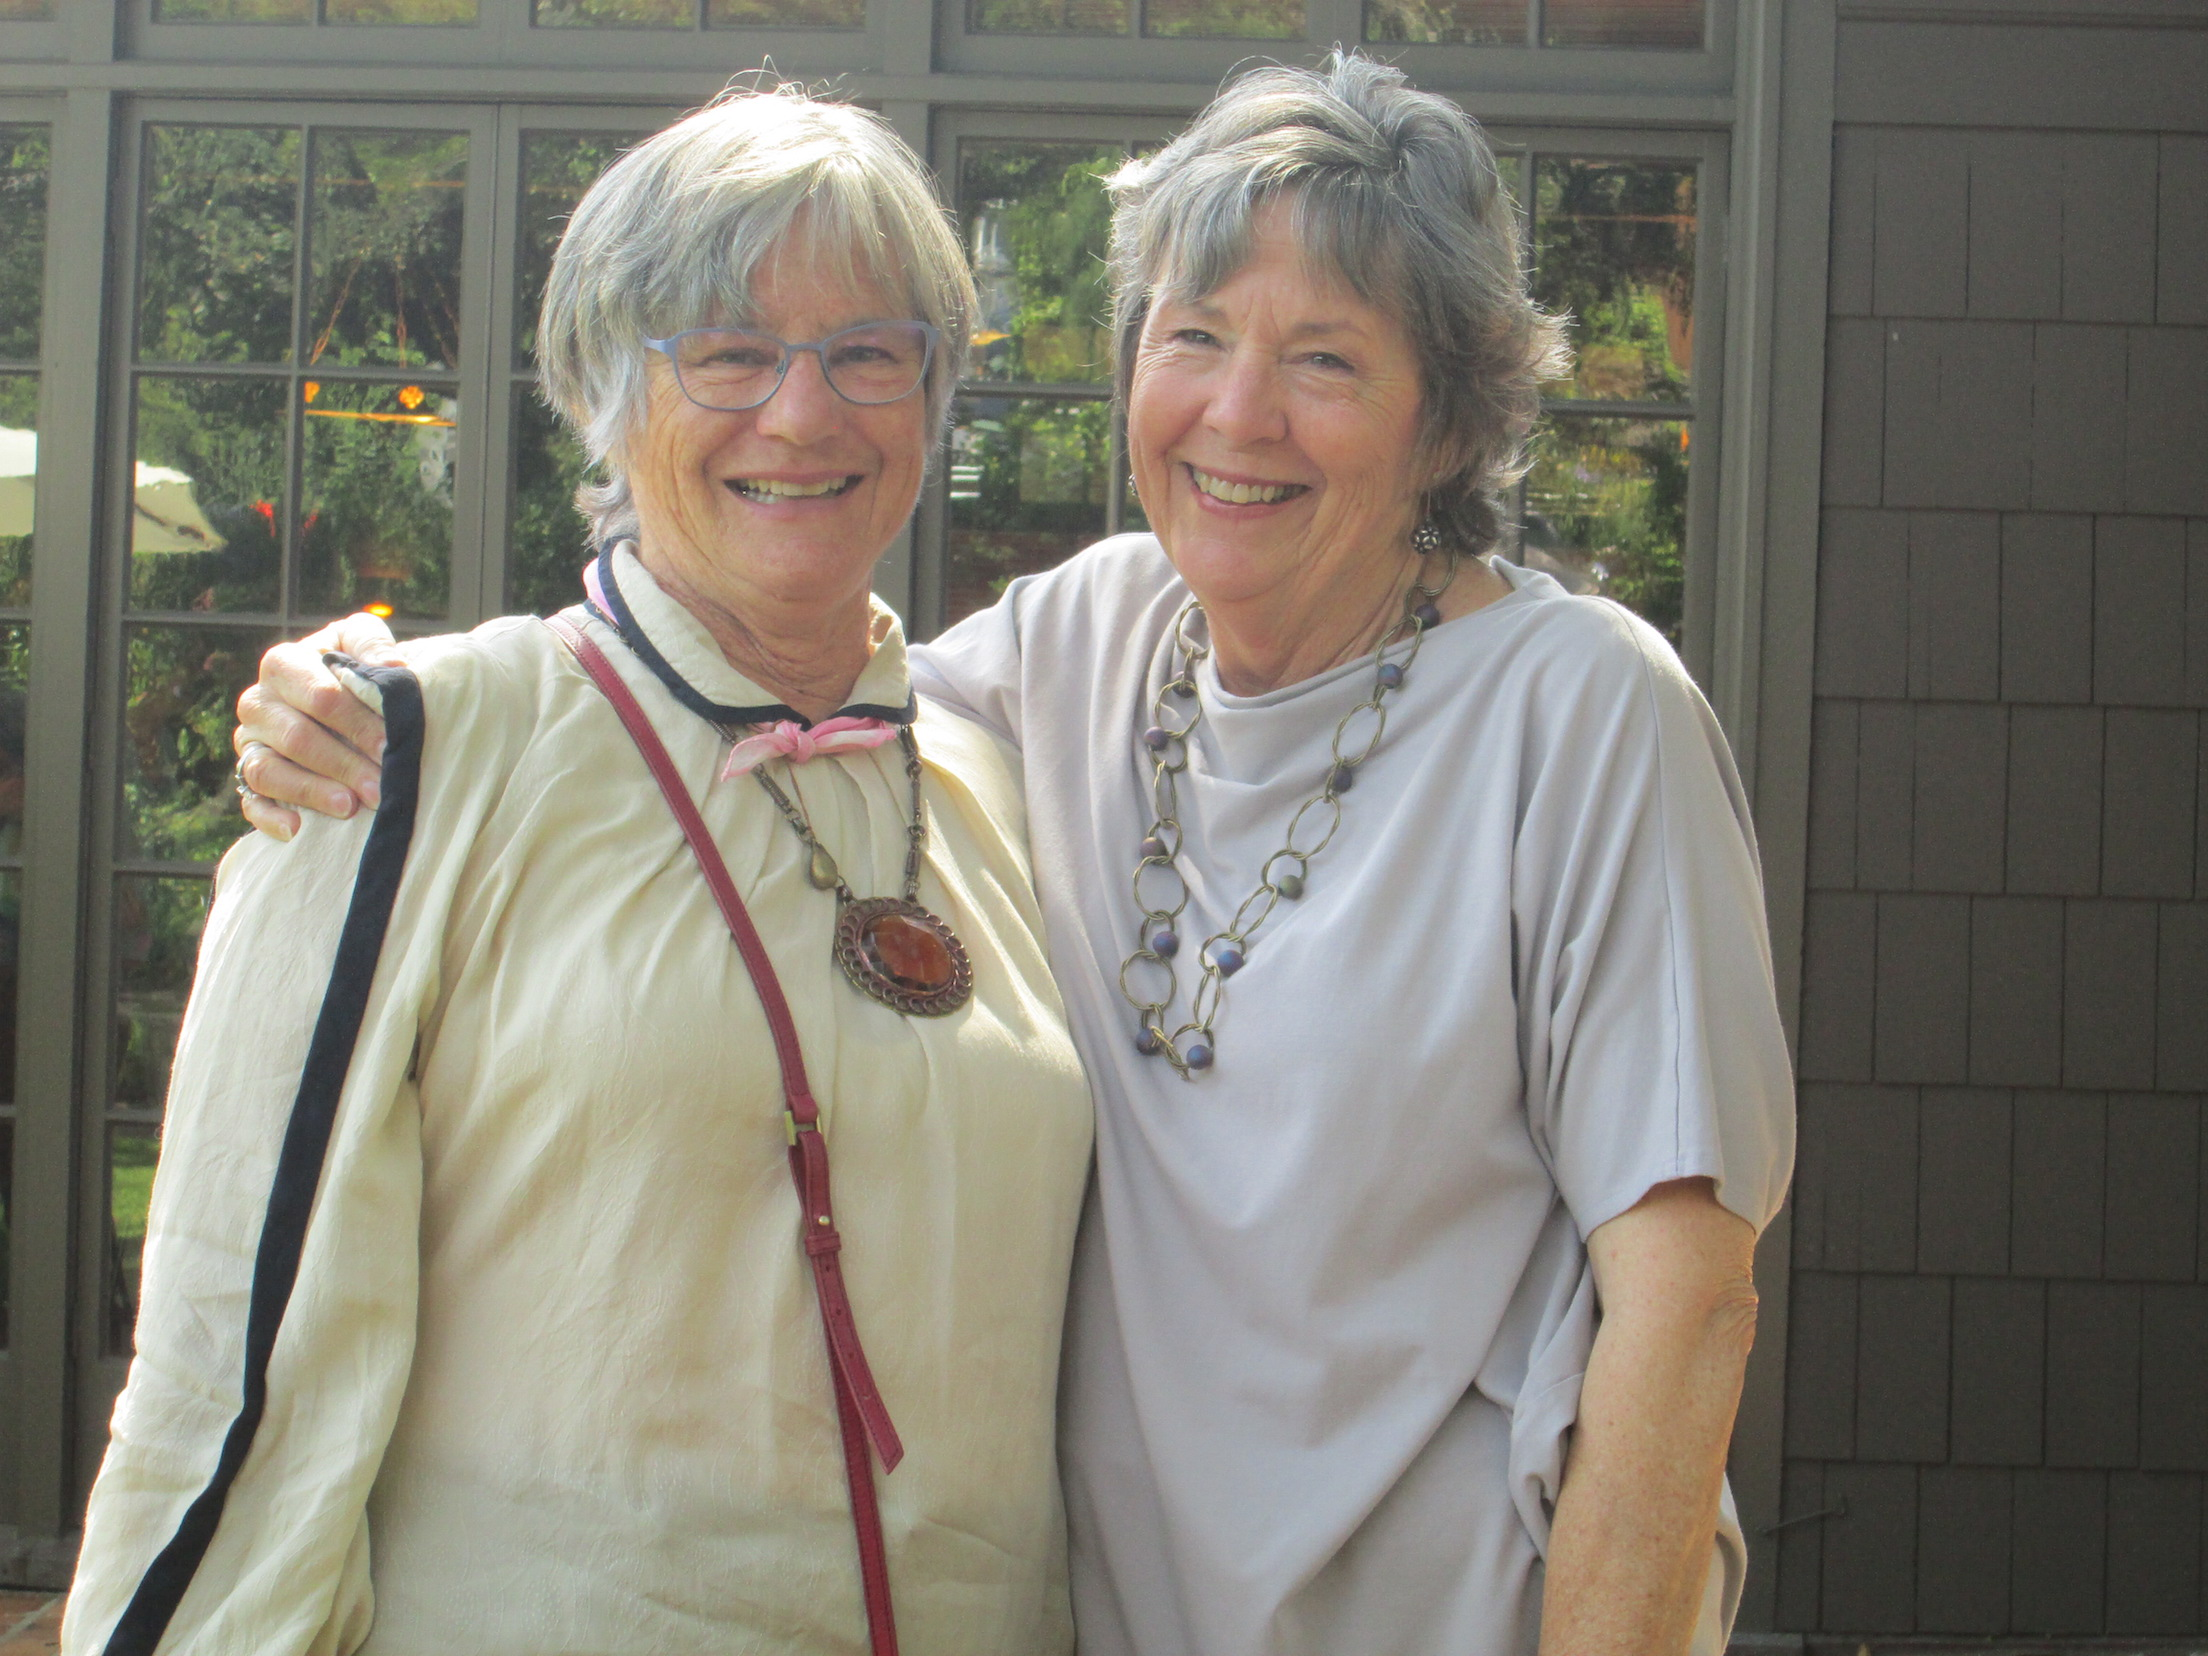 Alice Merrill (left) and retiring Woman's Club president Molly Squires  Photo by Steefenie Wicks